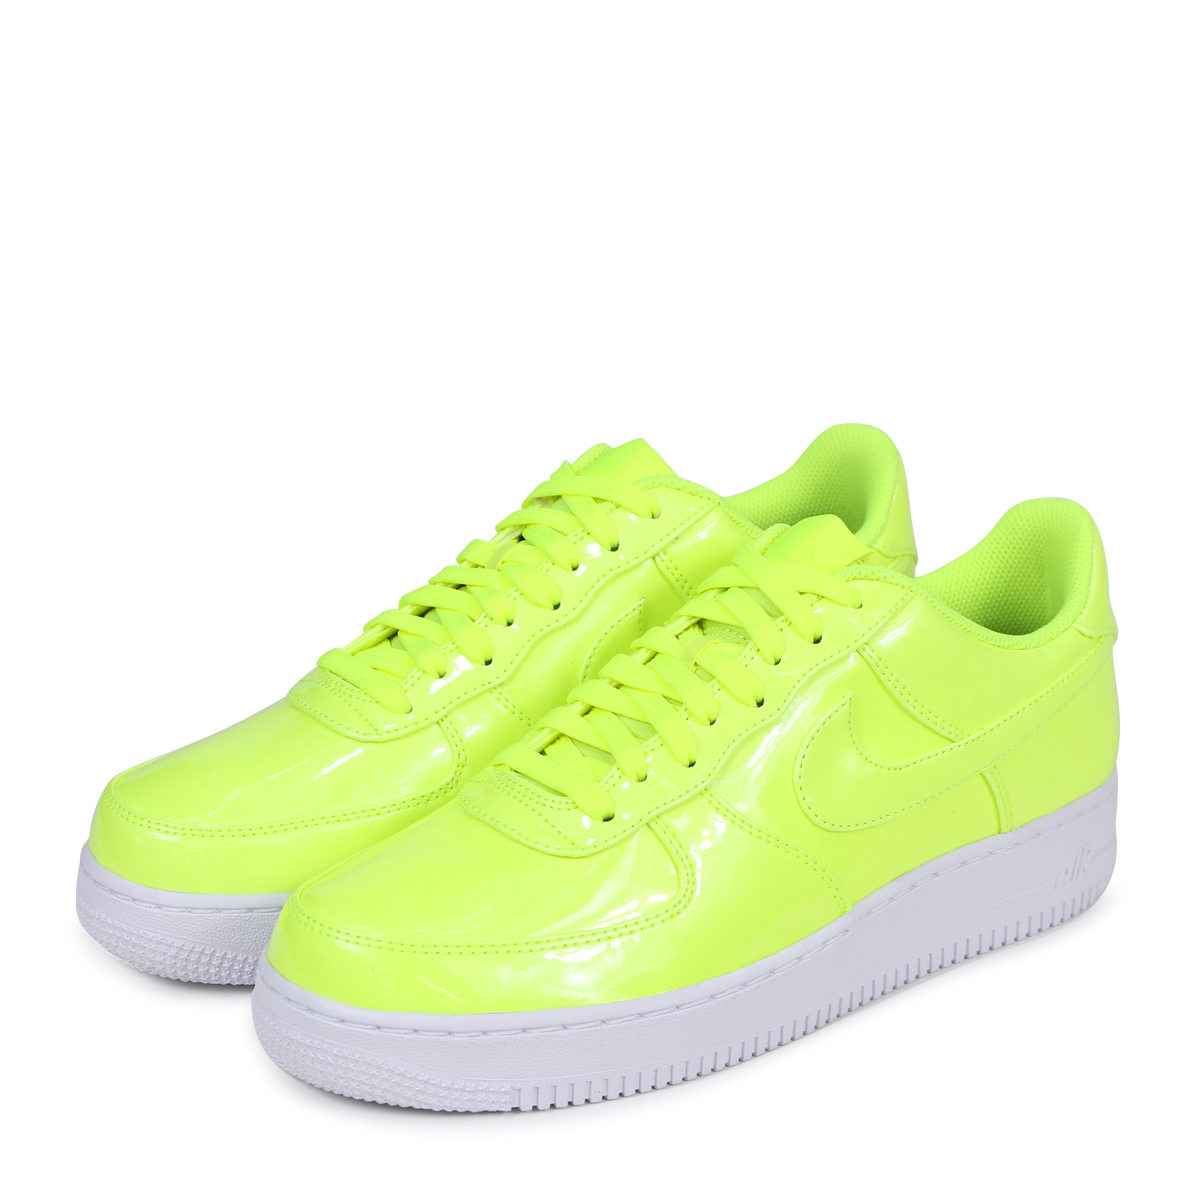 sports shoes 0ea11 4a32f NIKE AIR FORCE 1 UV Nike air force 1 07 LV8 sneakers men gap Dis AJ9505-700  yellow  load planned Shinnyu load in reservation product 4 23 containing    184